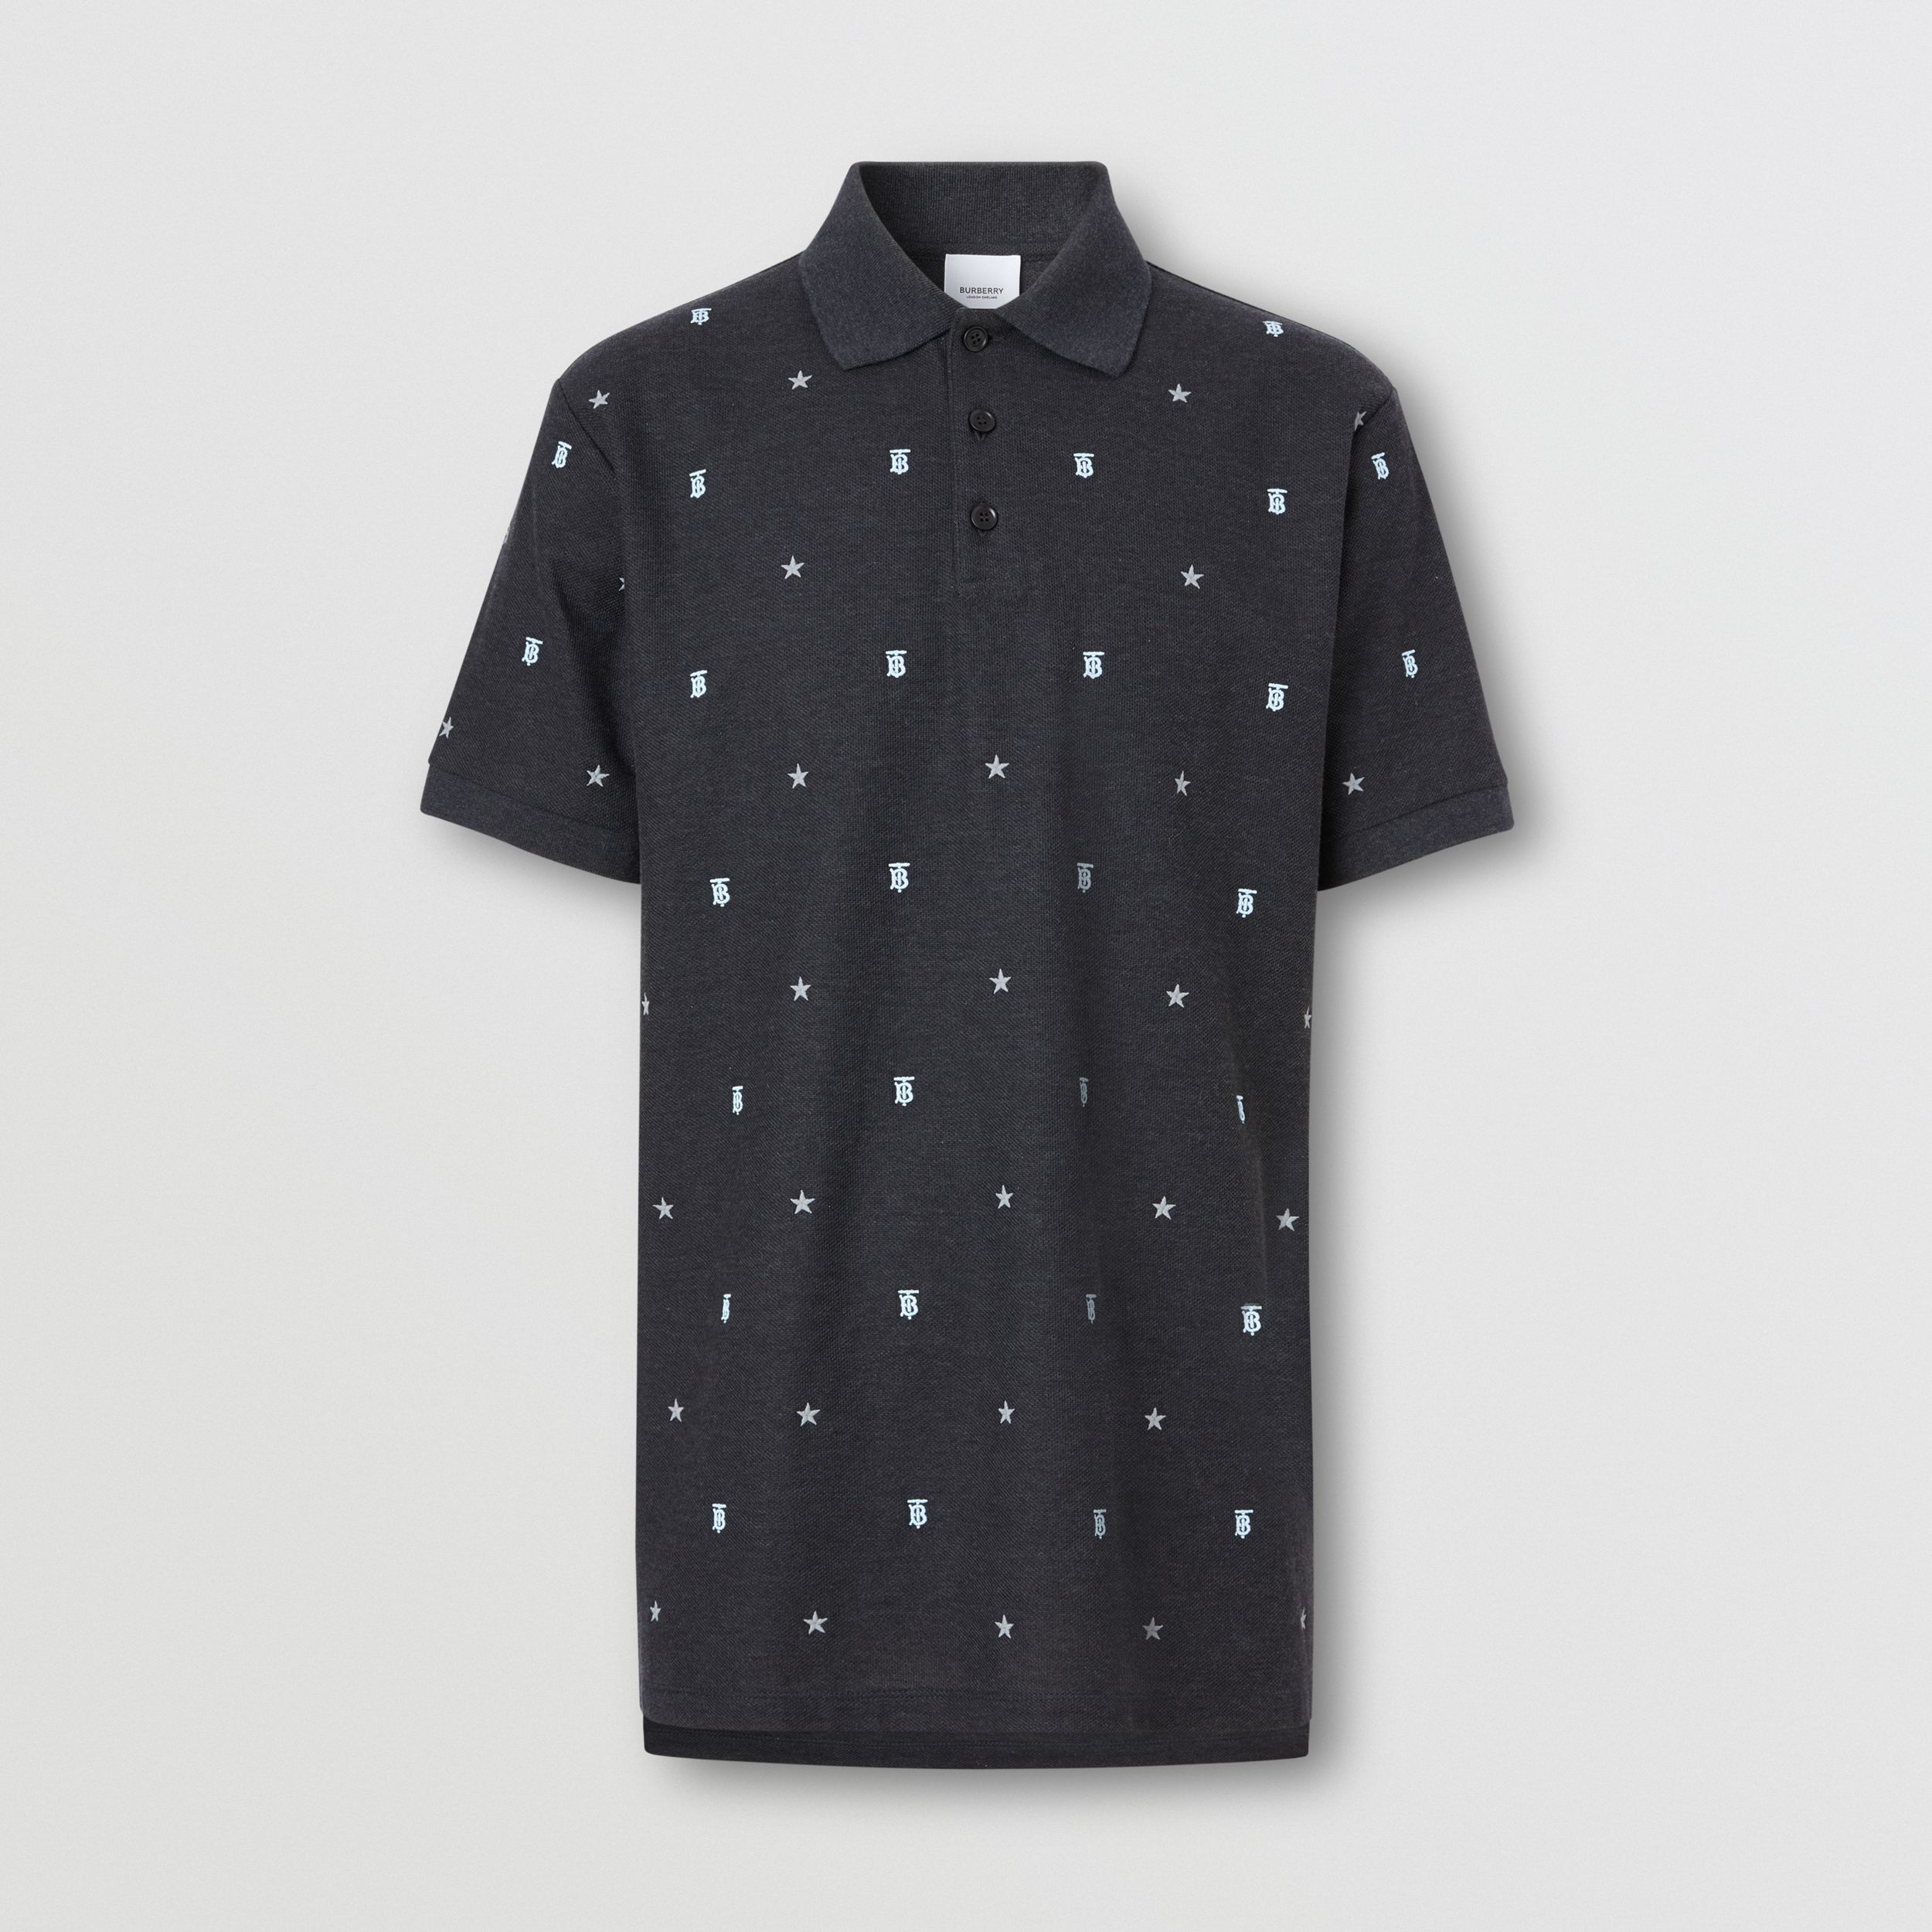 Star and Monogram Motif Cotton Piqué Polo Shirt in Charcoal Melange - Men | Burberry - 4